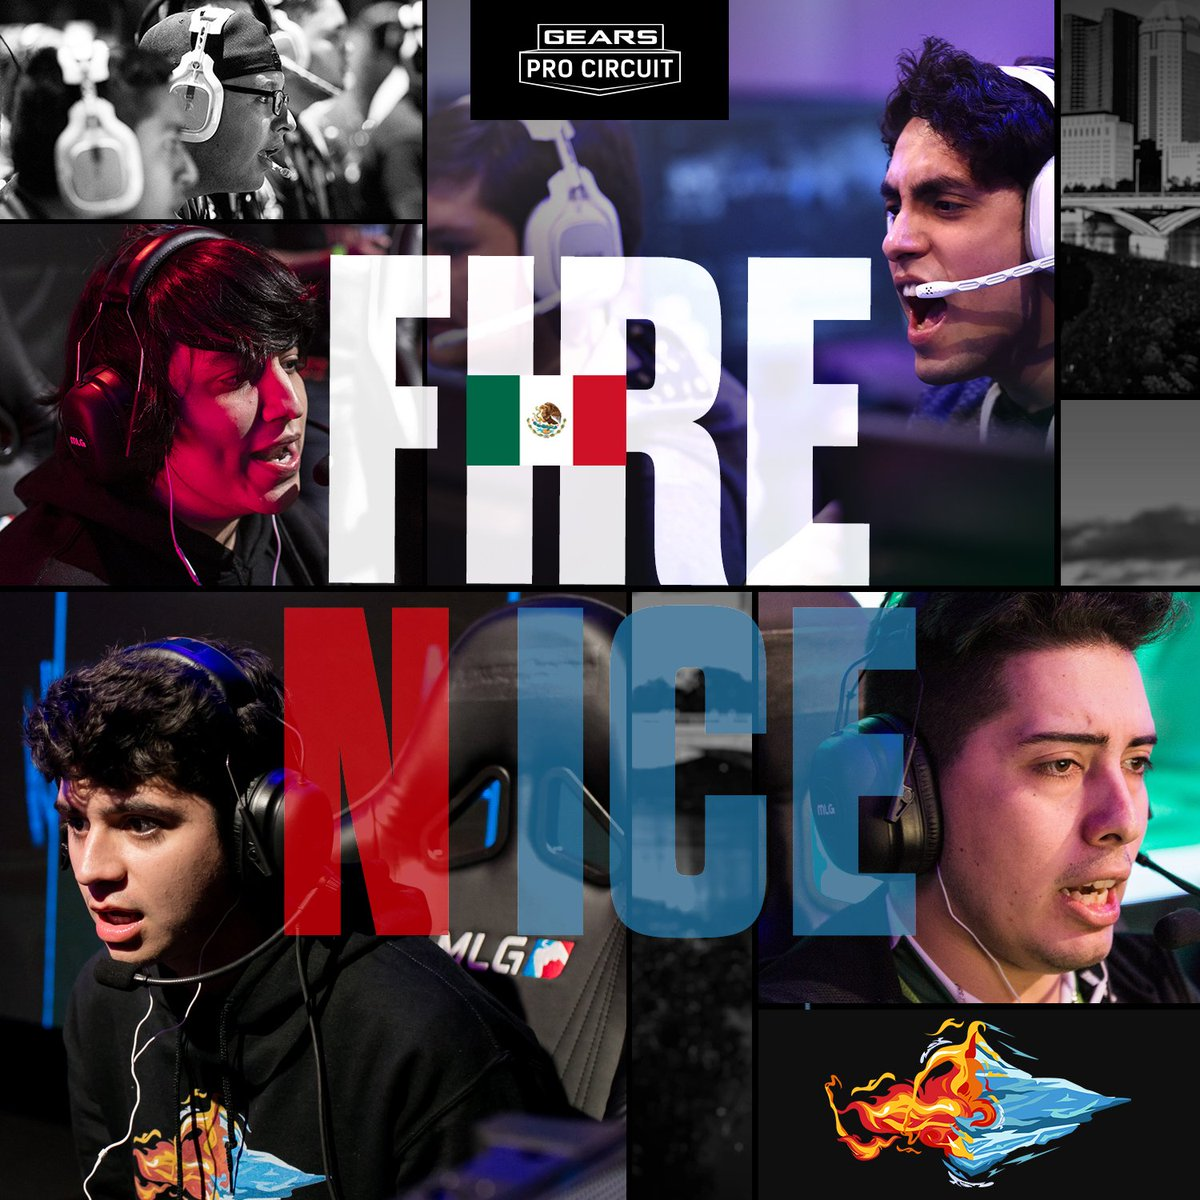 .@FireNIceEsports take on @GGSimplicity on Main Stage, while @OpTicGaming battles LATAM Kings on Bravo. Winners moves on to the semi-finals, Losers go home.  Tune in now! Main - http://live.gearsofwar.com  Bravo - http://live.gearsofwar.com/mixer-bravo  Spanish Captions - http://live.gearsofwar.com/twitch-spanish